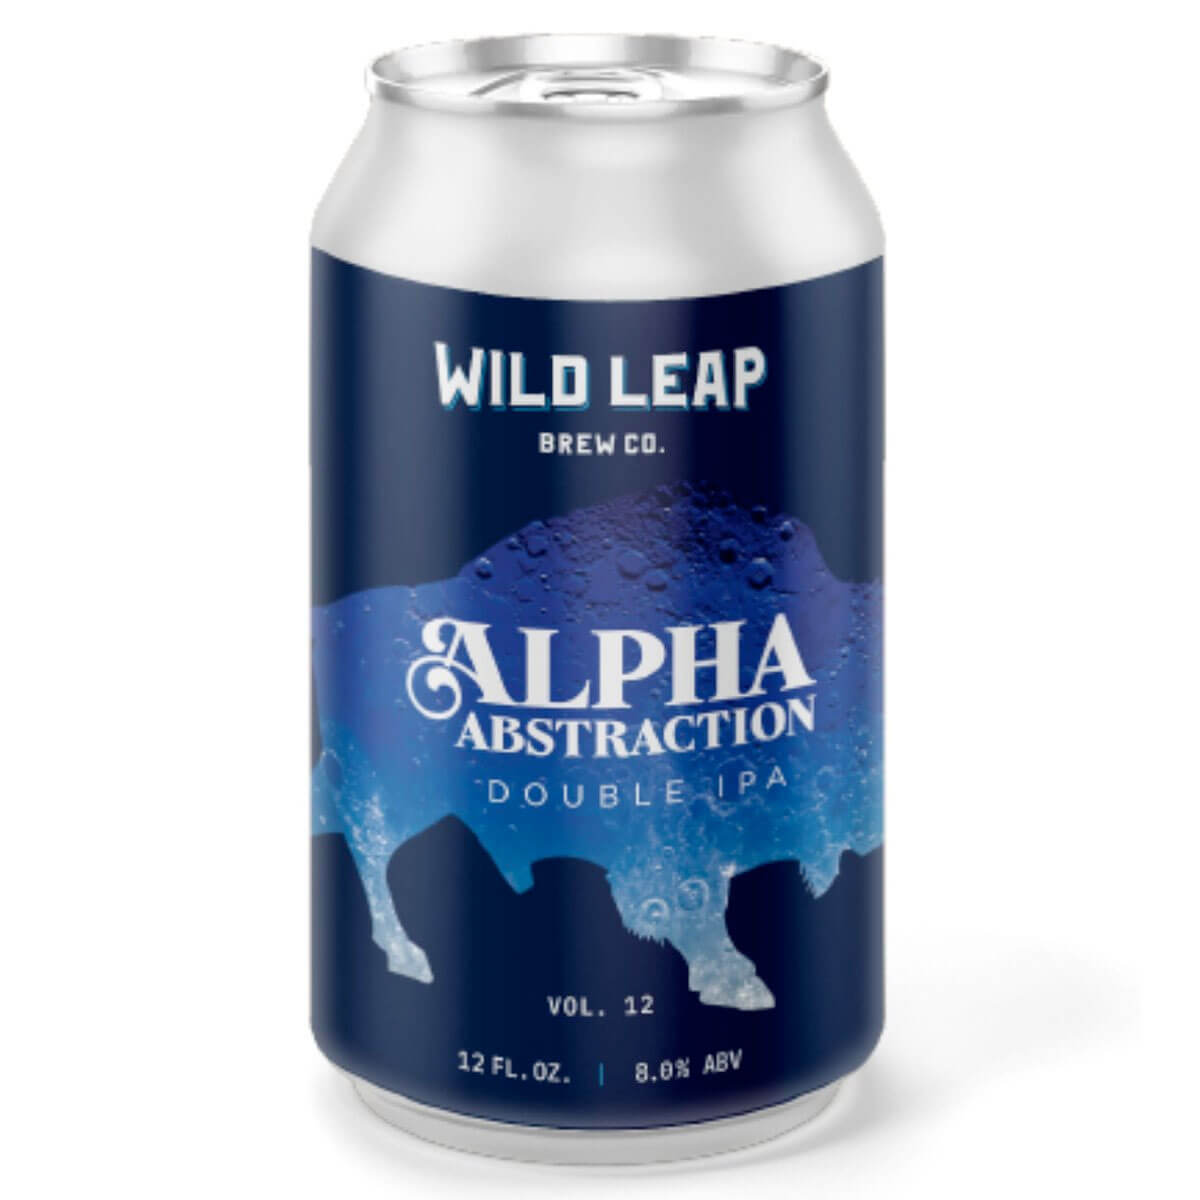 12 oz. can of the Alpha Abstraction Vol. 12 Double IPA by Wild Leap Brew Co.